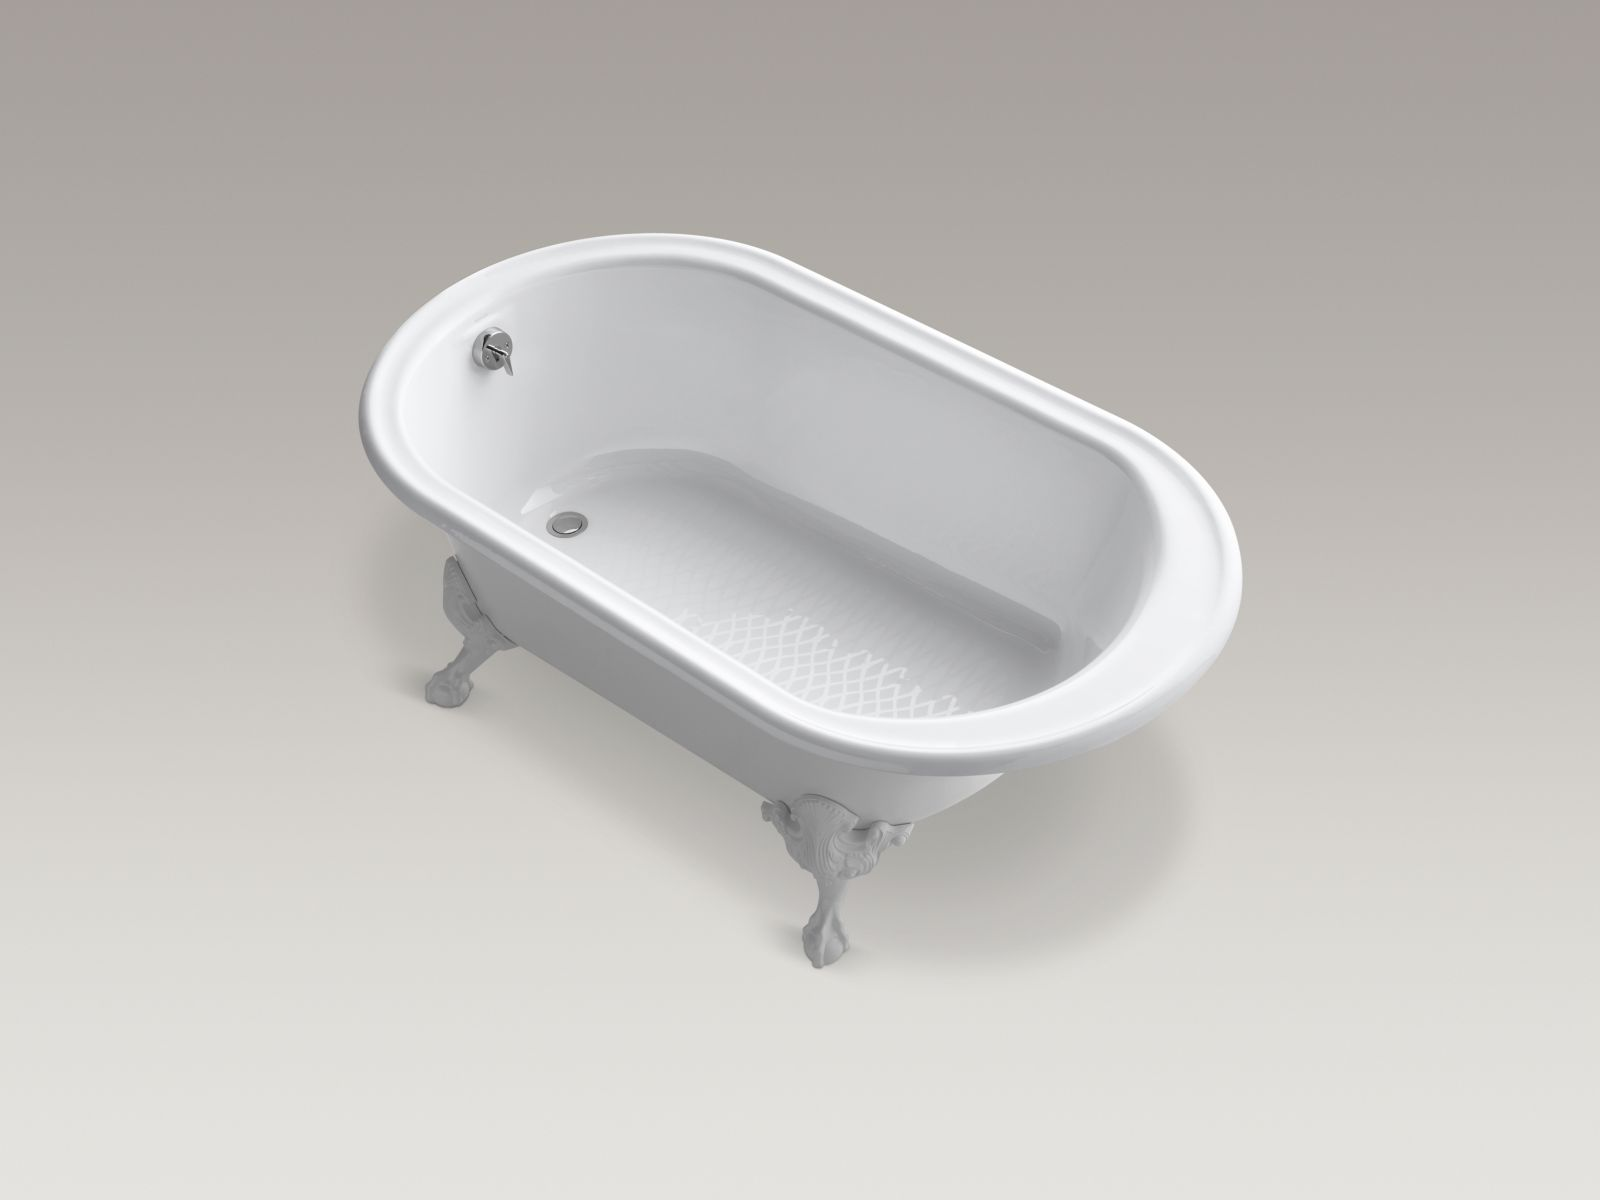 "Kohler K-710-W-0 Iron Works Historic 66"" x 36"" Freestanding Soaker Bathtub with White Exterior White"